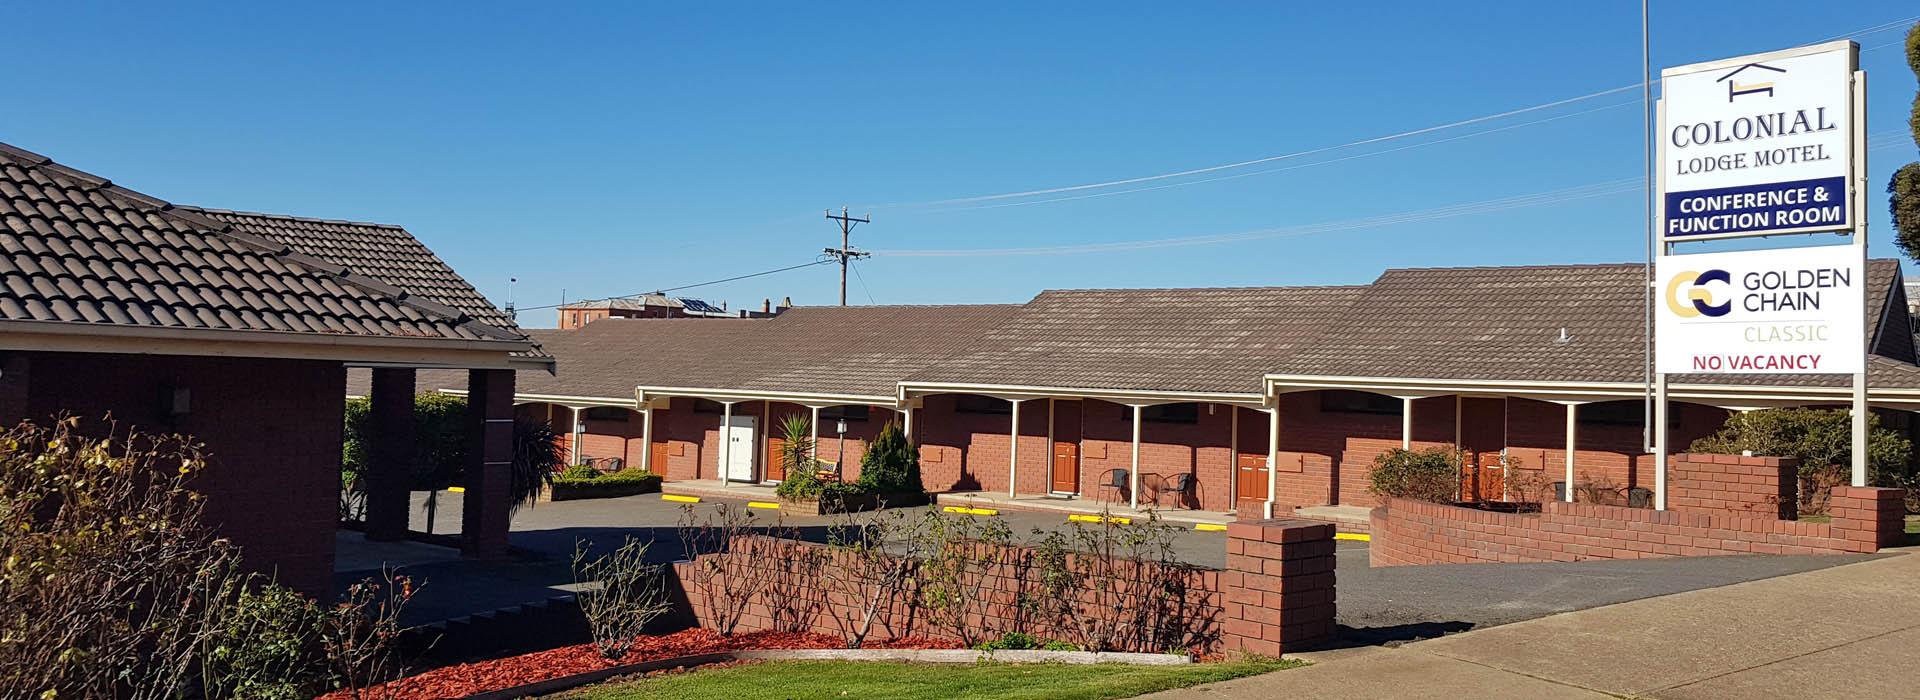 Golden Chain Ararat Colonial Lodge Motel features 19 spacious ground floor units with convenient off road parking.